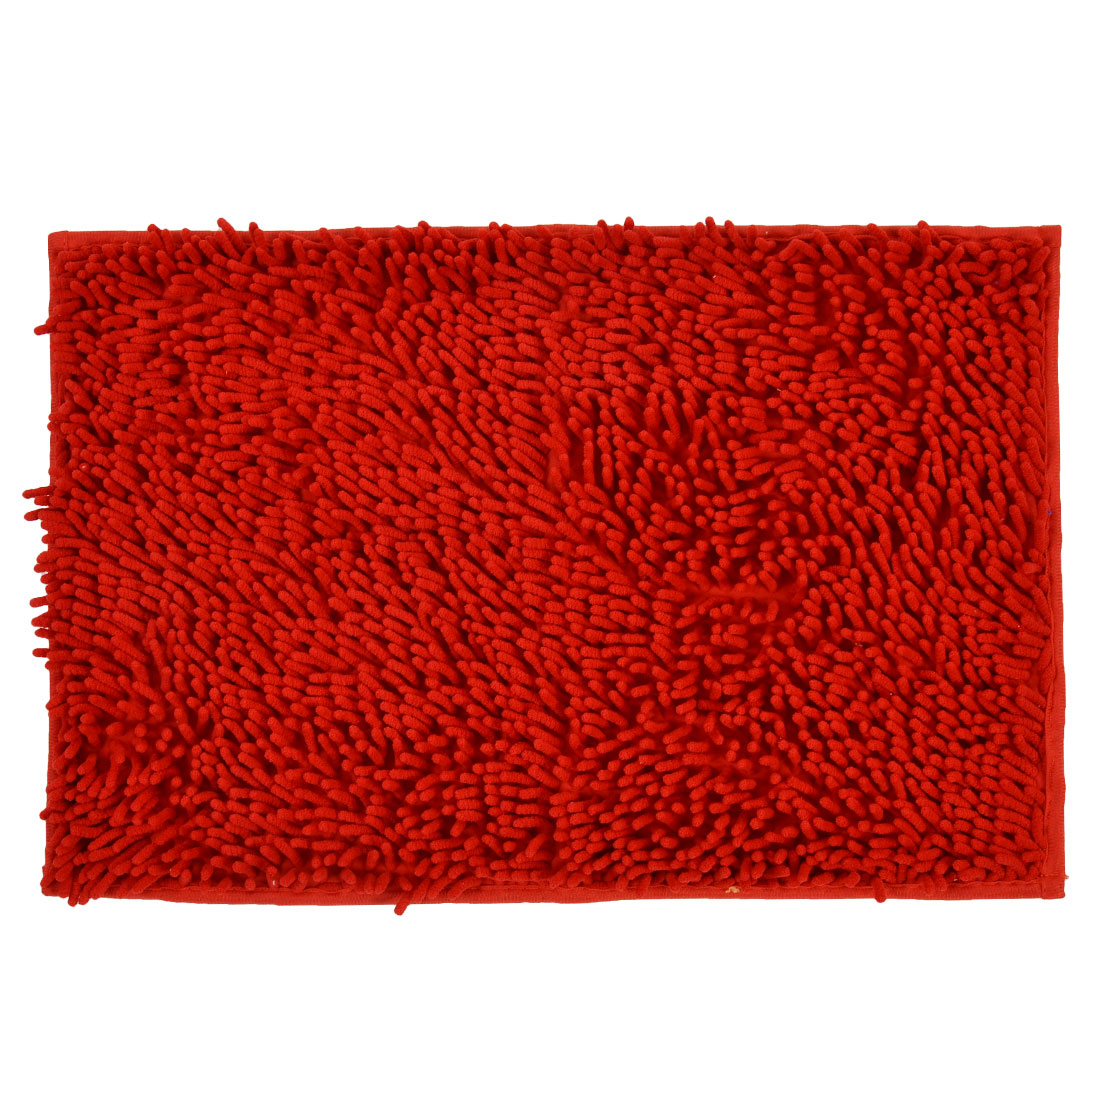 60cm x 40cm Red Polyester Rectangle Absorbent Slip-resistant Pad Bath Shower Rug